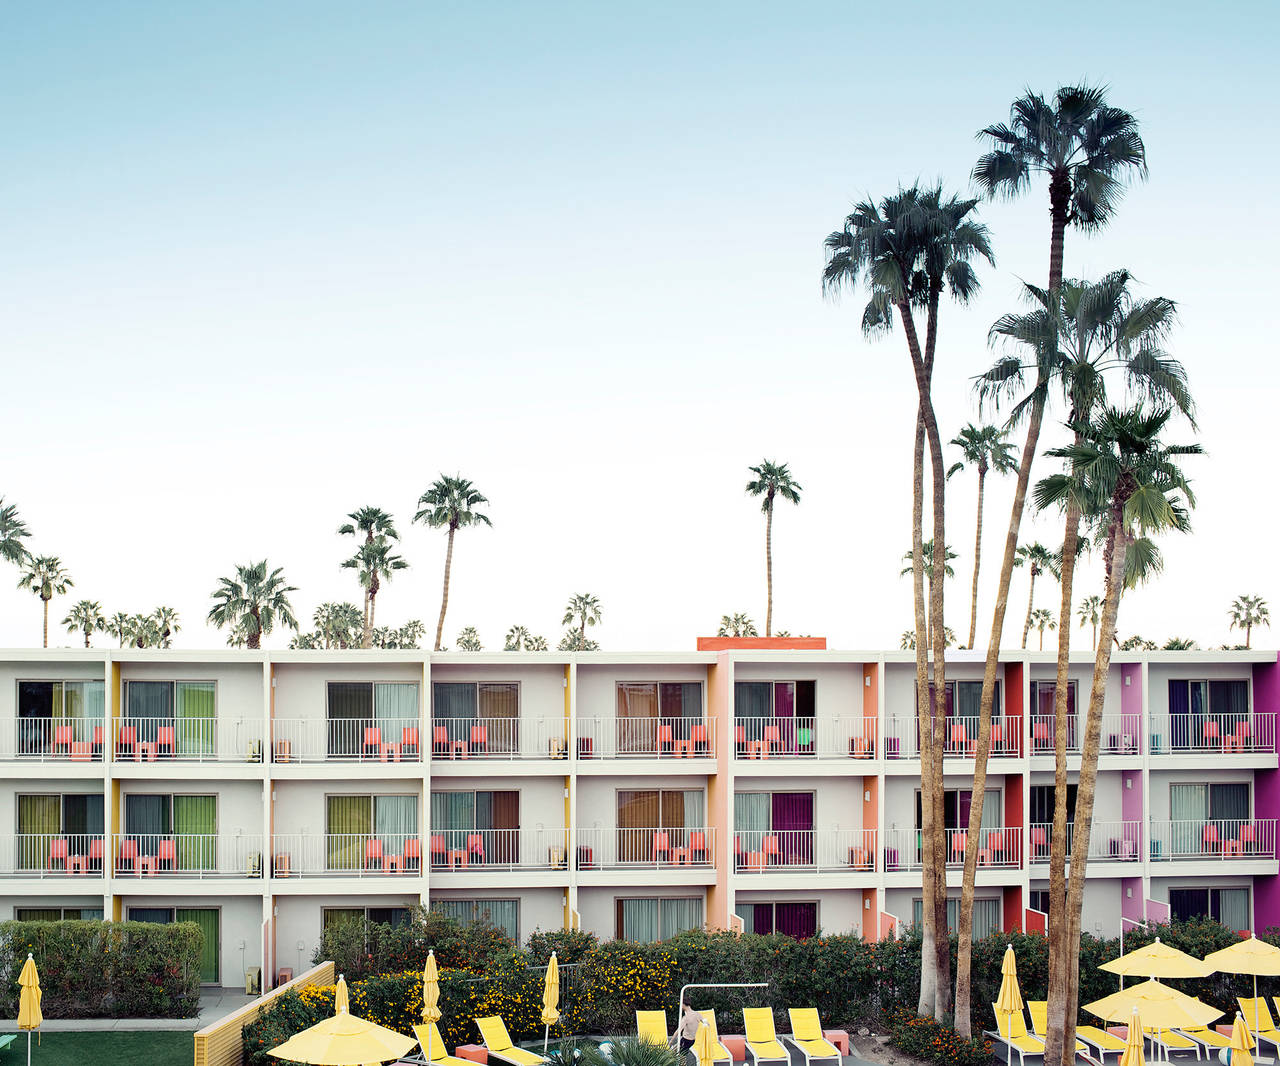 Ludwig Favre Palm Springs Hotel Print For Sale At 1stdibs